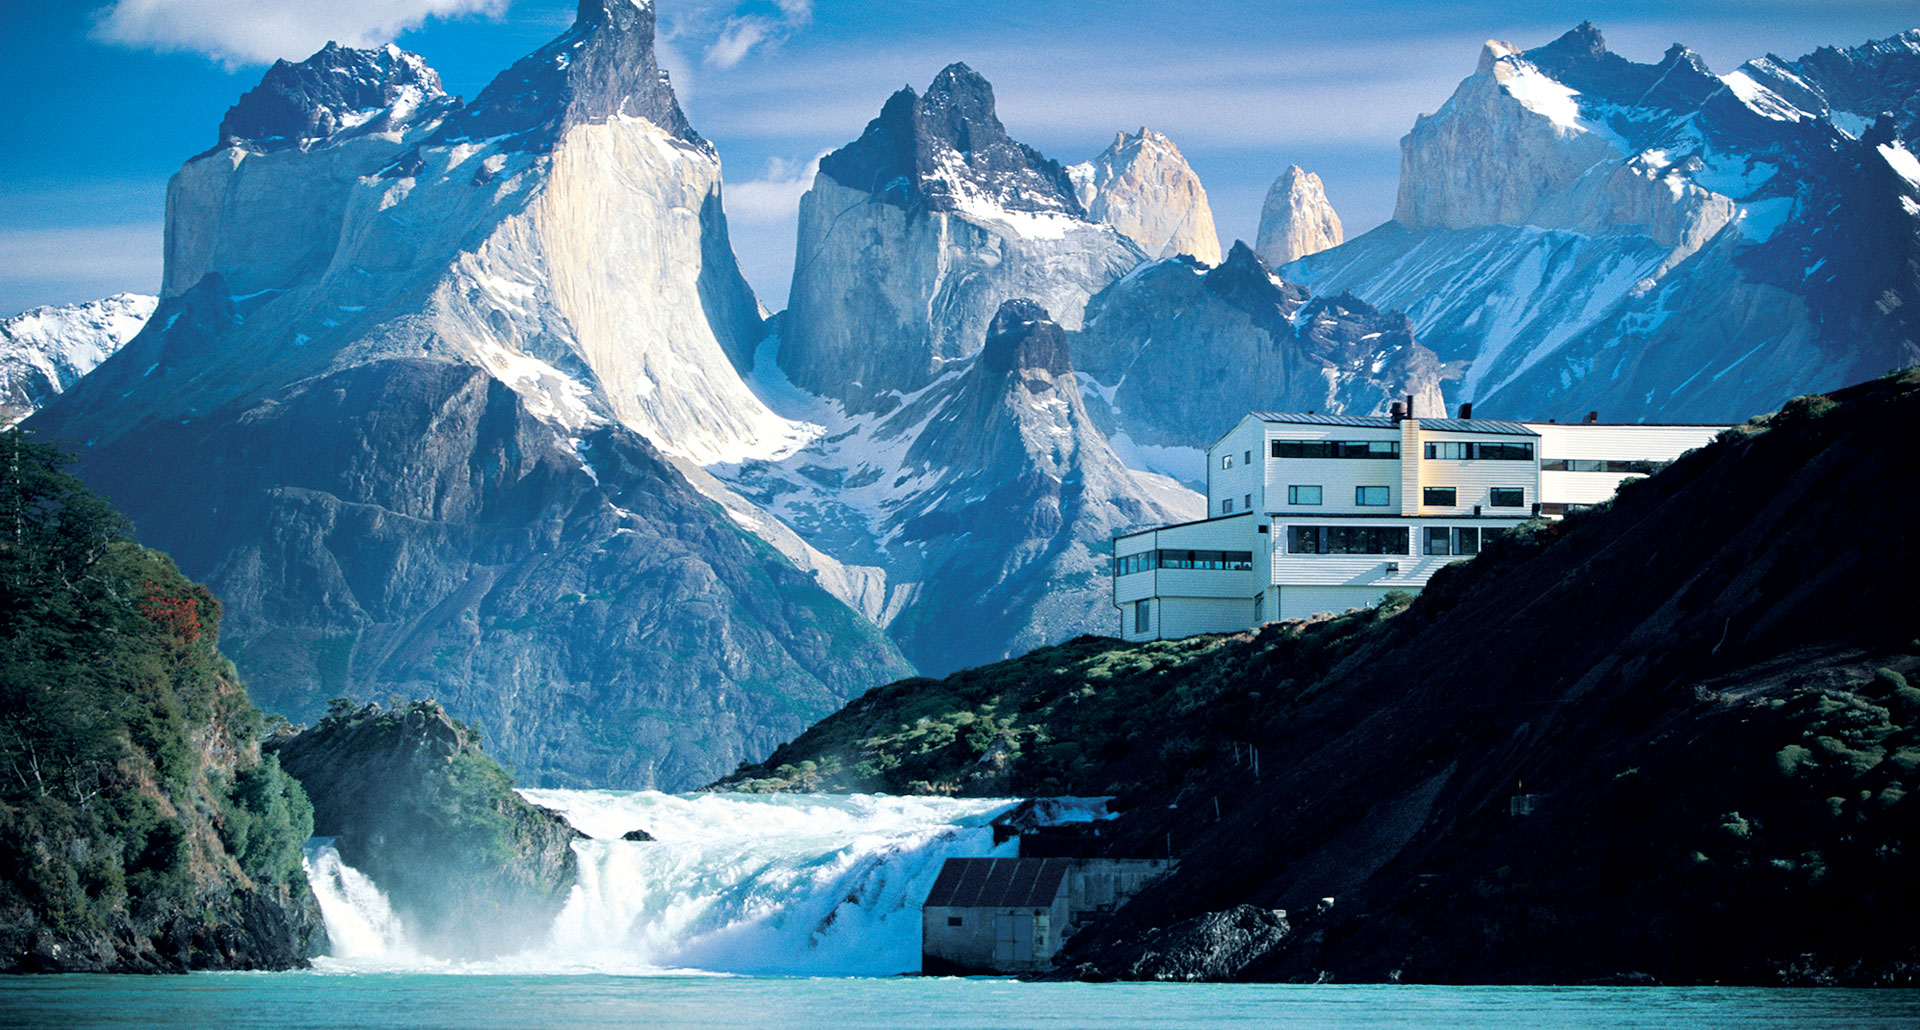 Explora Patagonia - boutique hotel in Torres del Paine